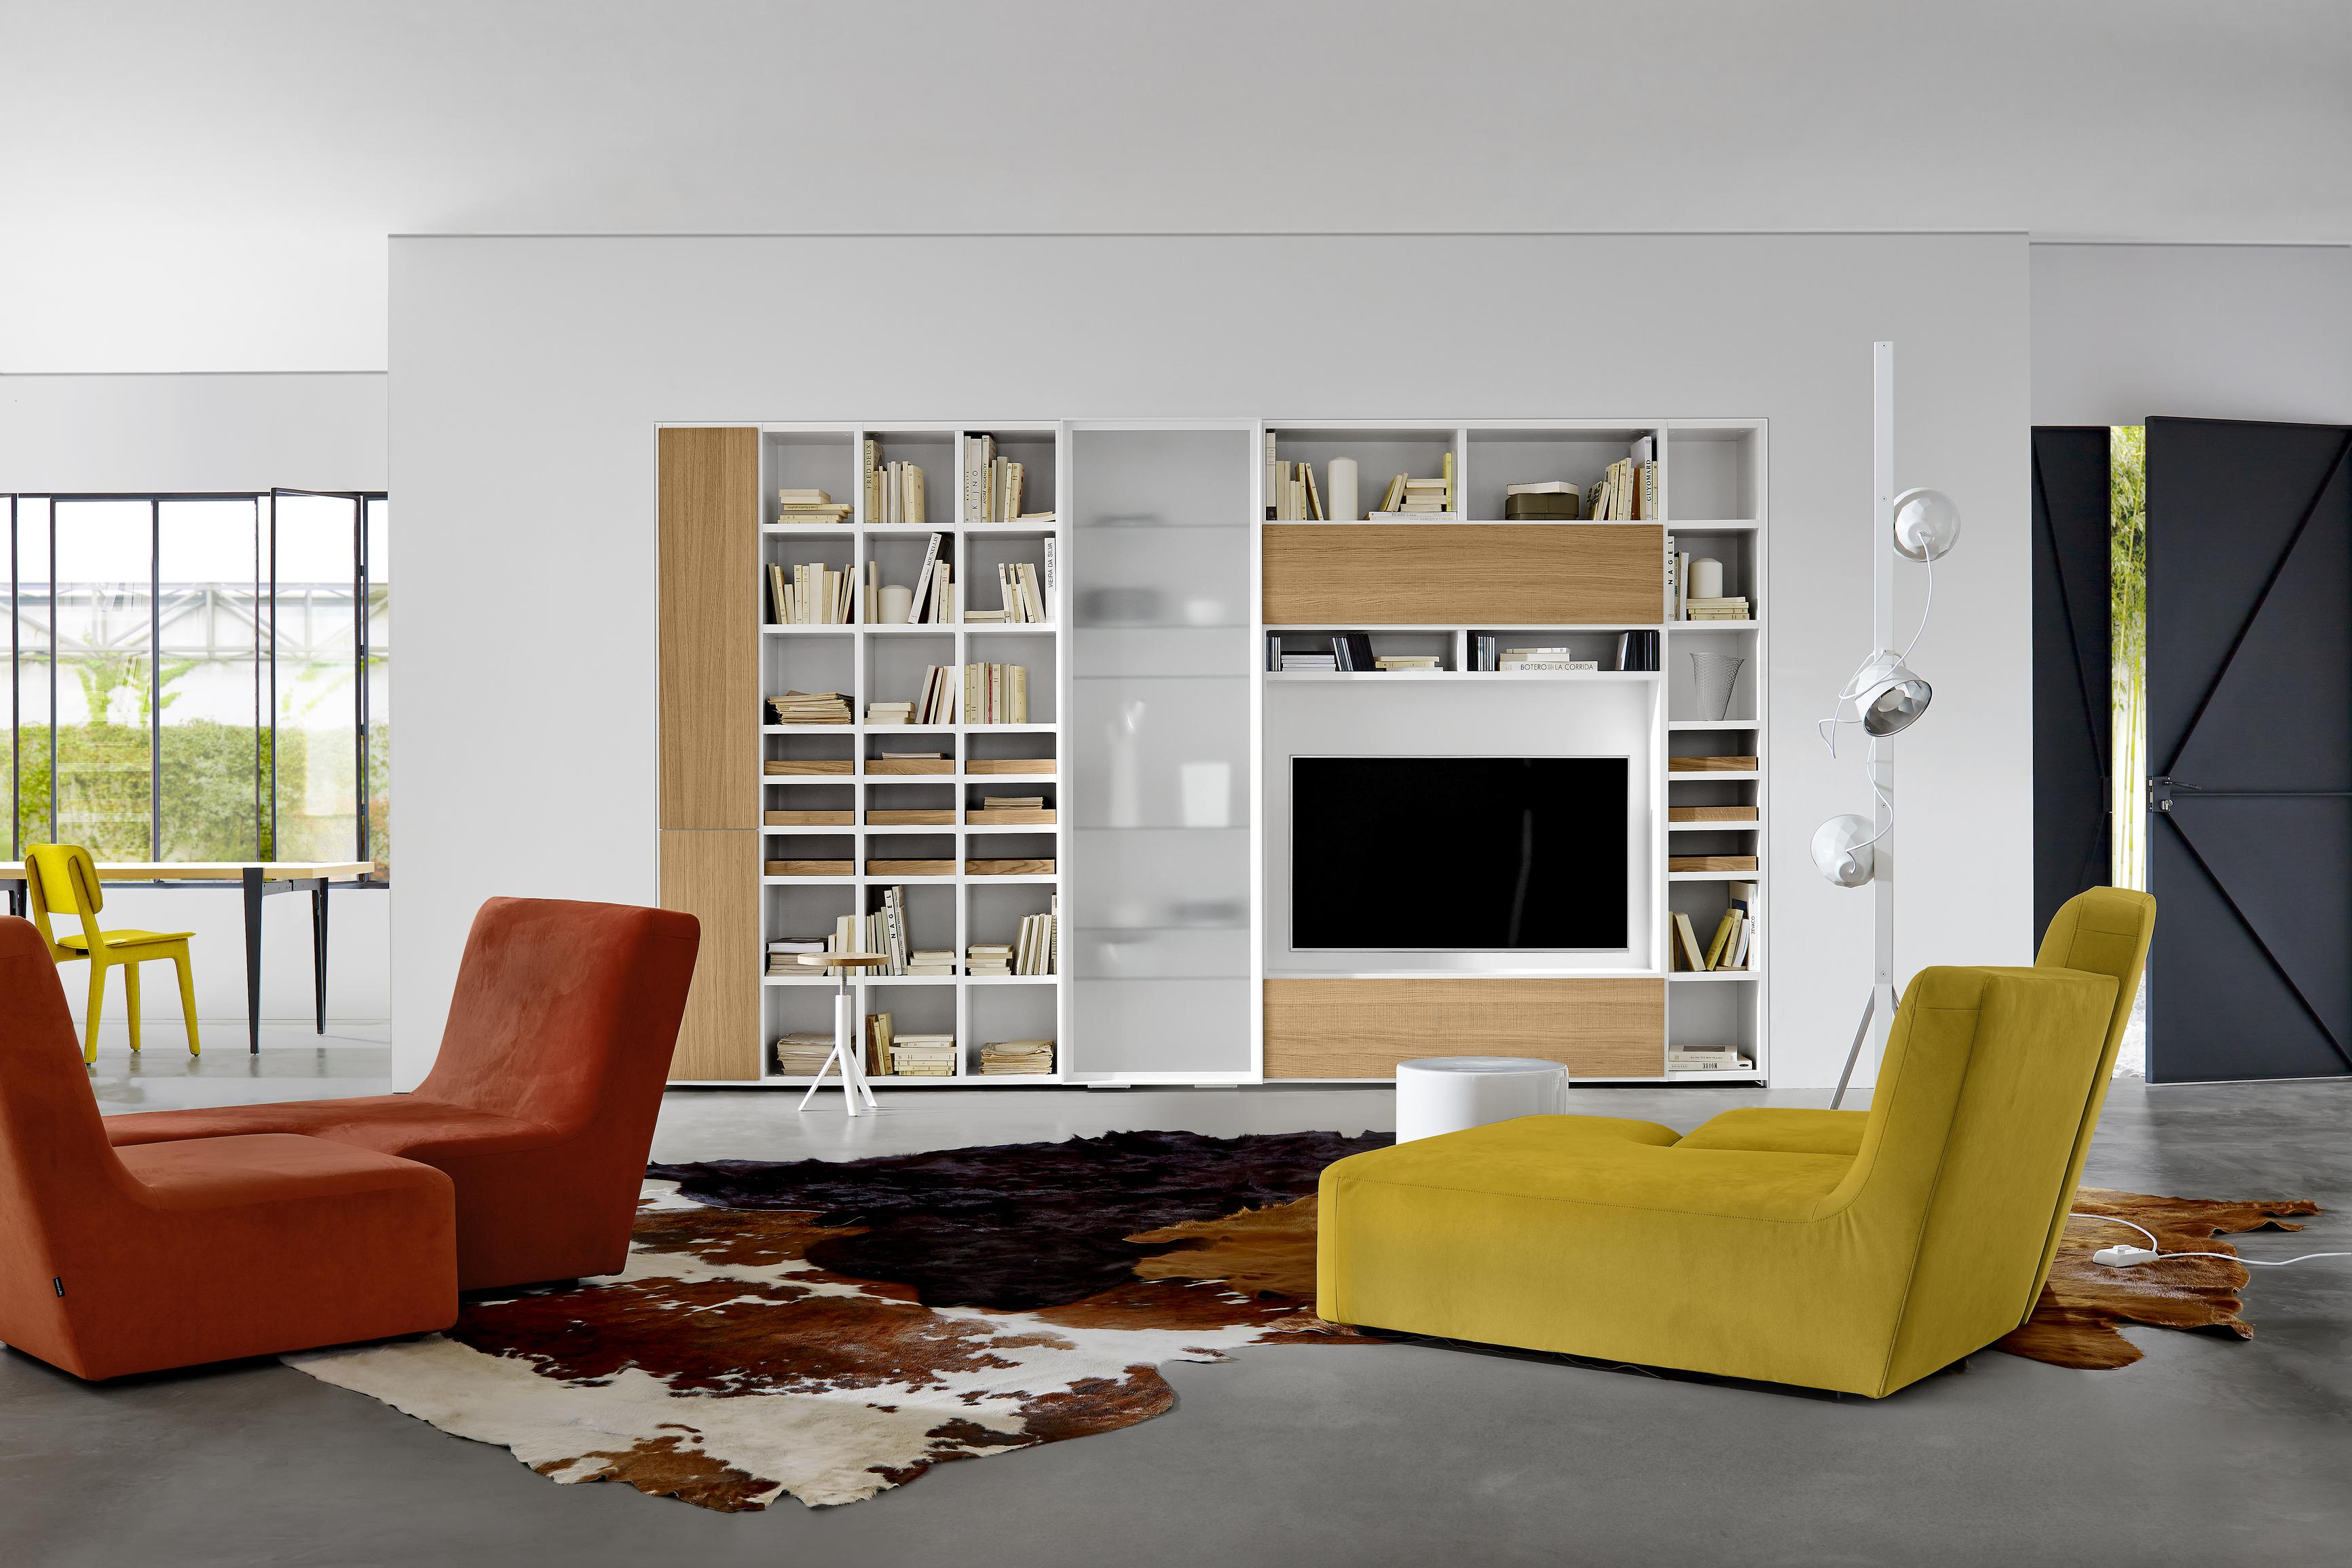 et cetera hi fi du designer pagnon pelha tre ligne roset site officiel. Black Bedroom Furniture Sets. Home Design Ideas